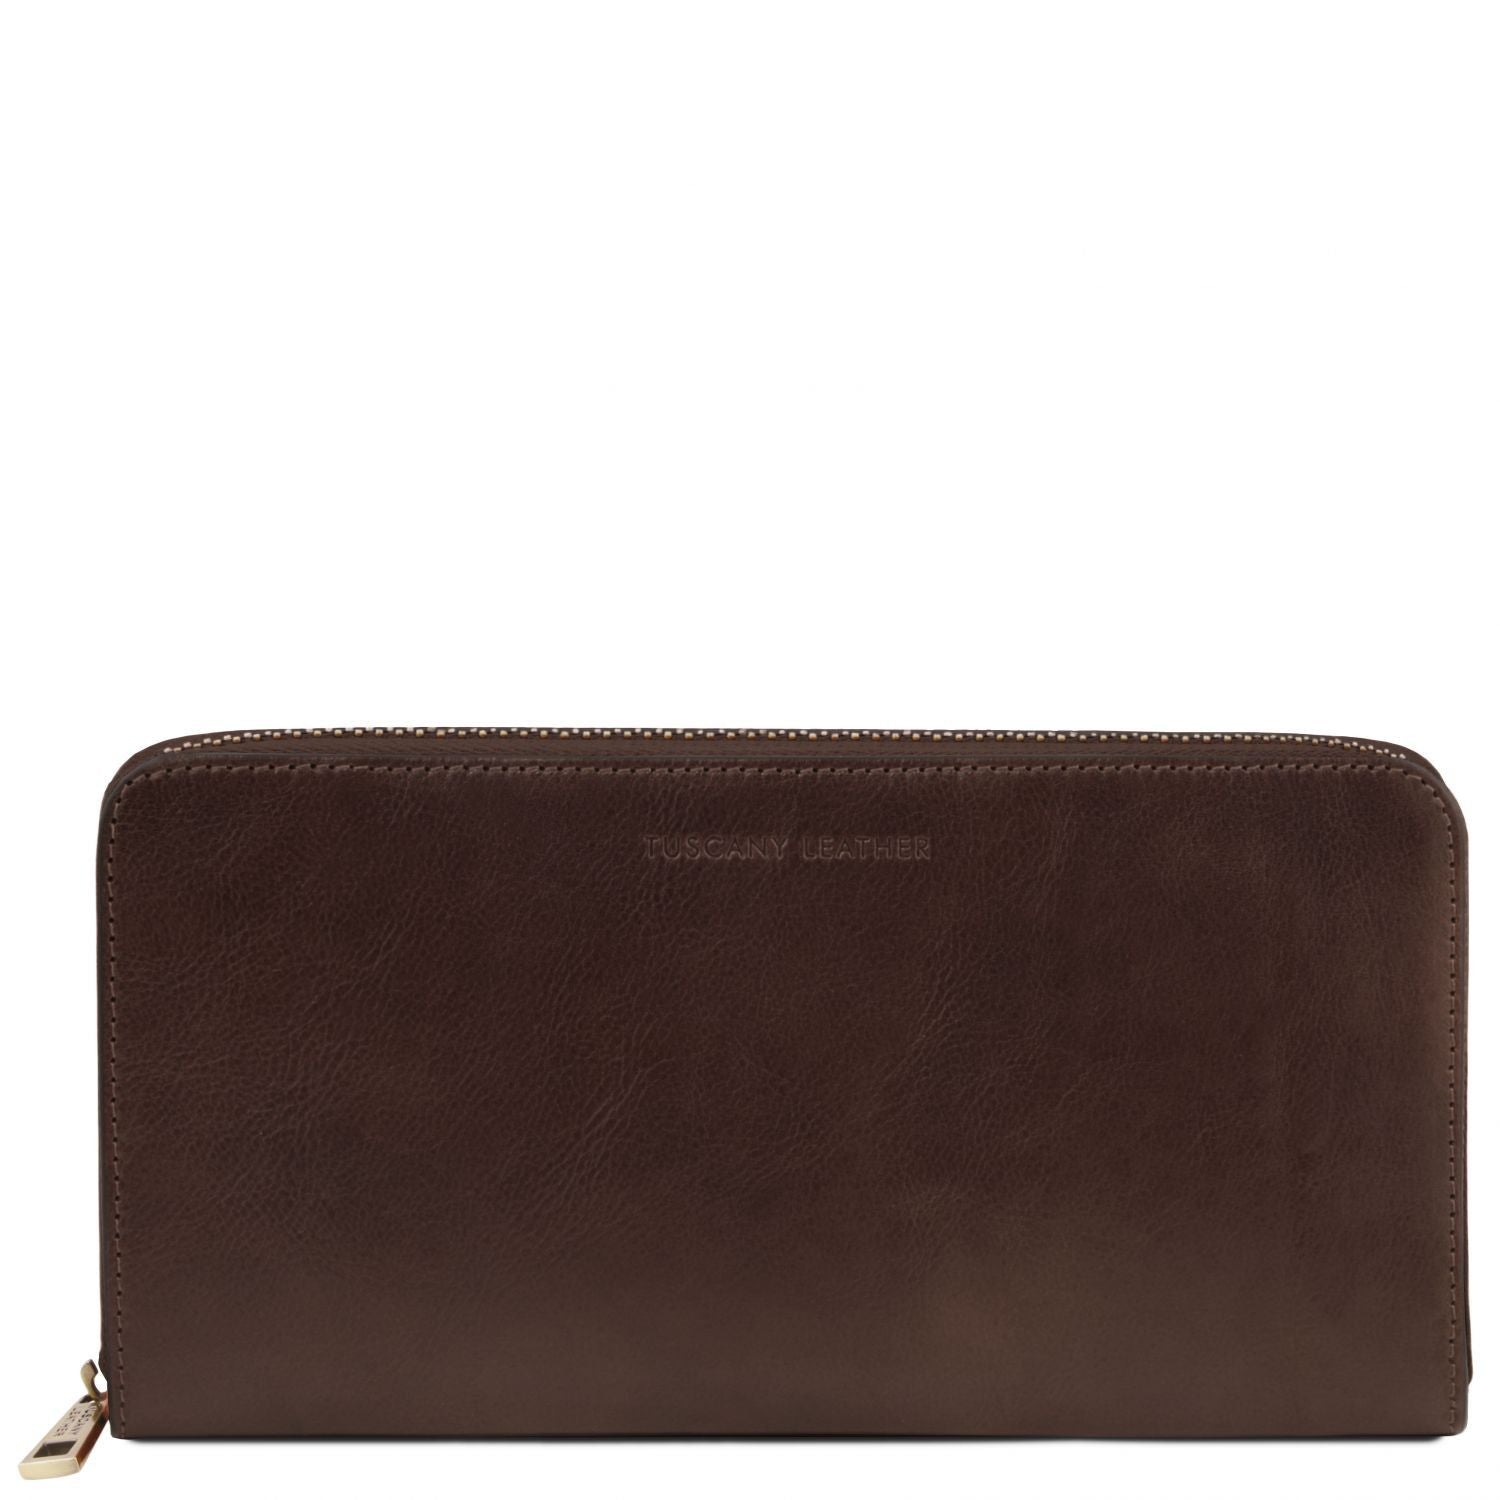 Exclusive leather travel document case (TL141663) - Travel leather accessories | DILUSSOBAGS